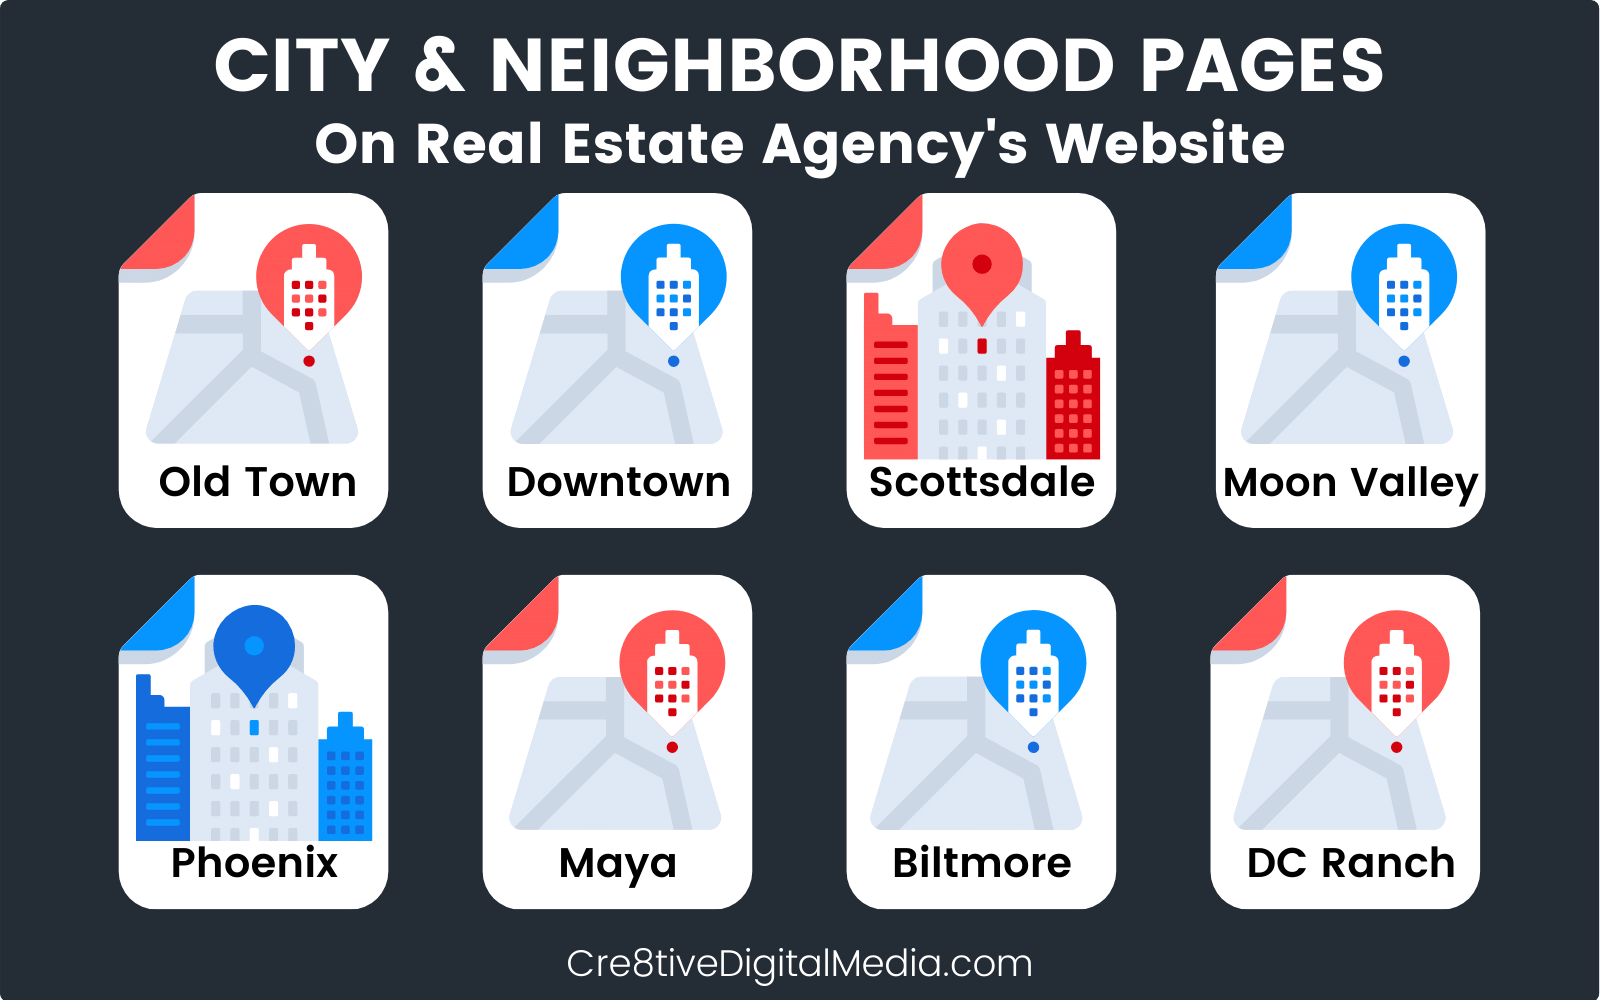 Real Estate Website City Pages